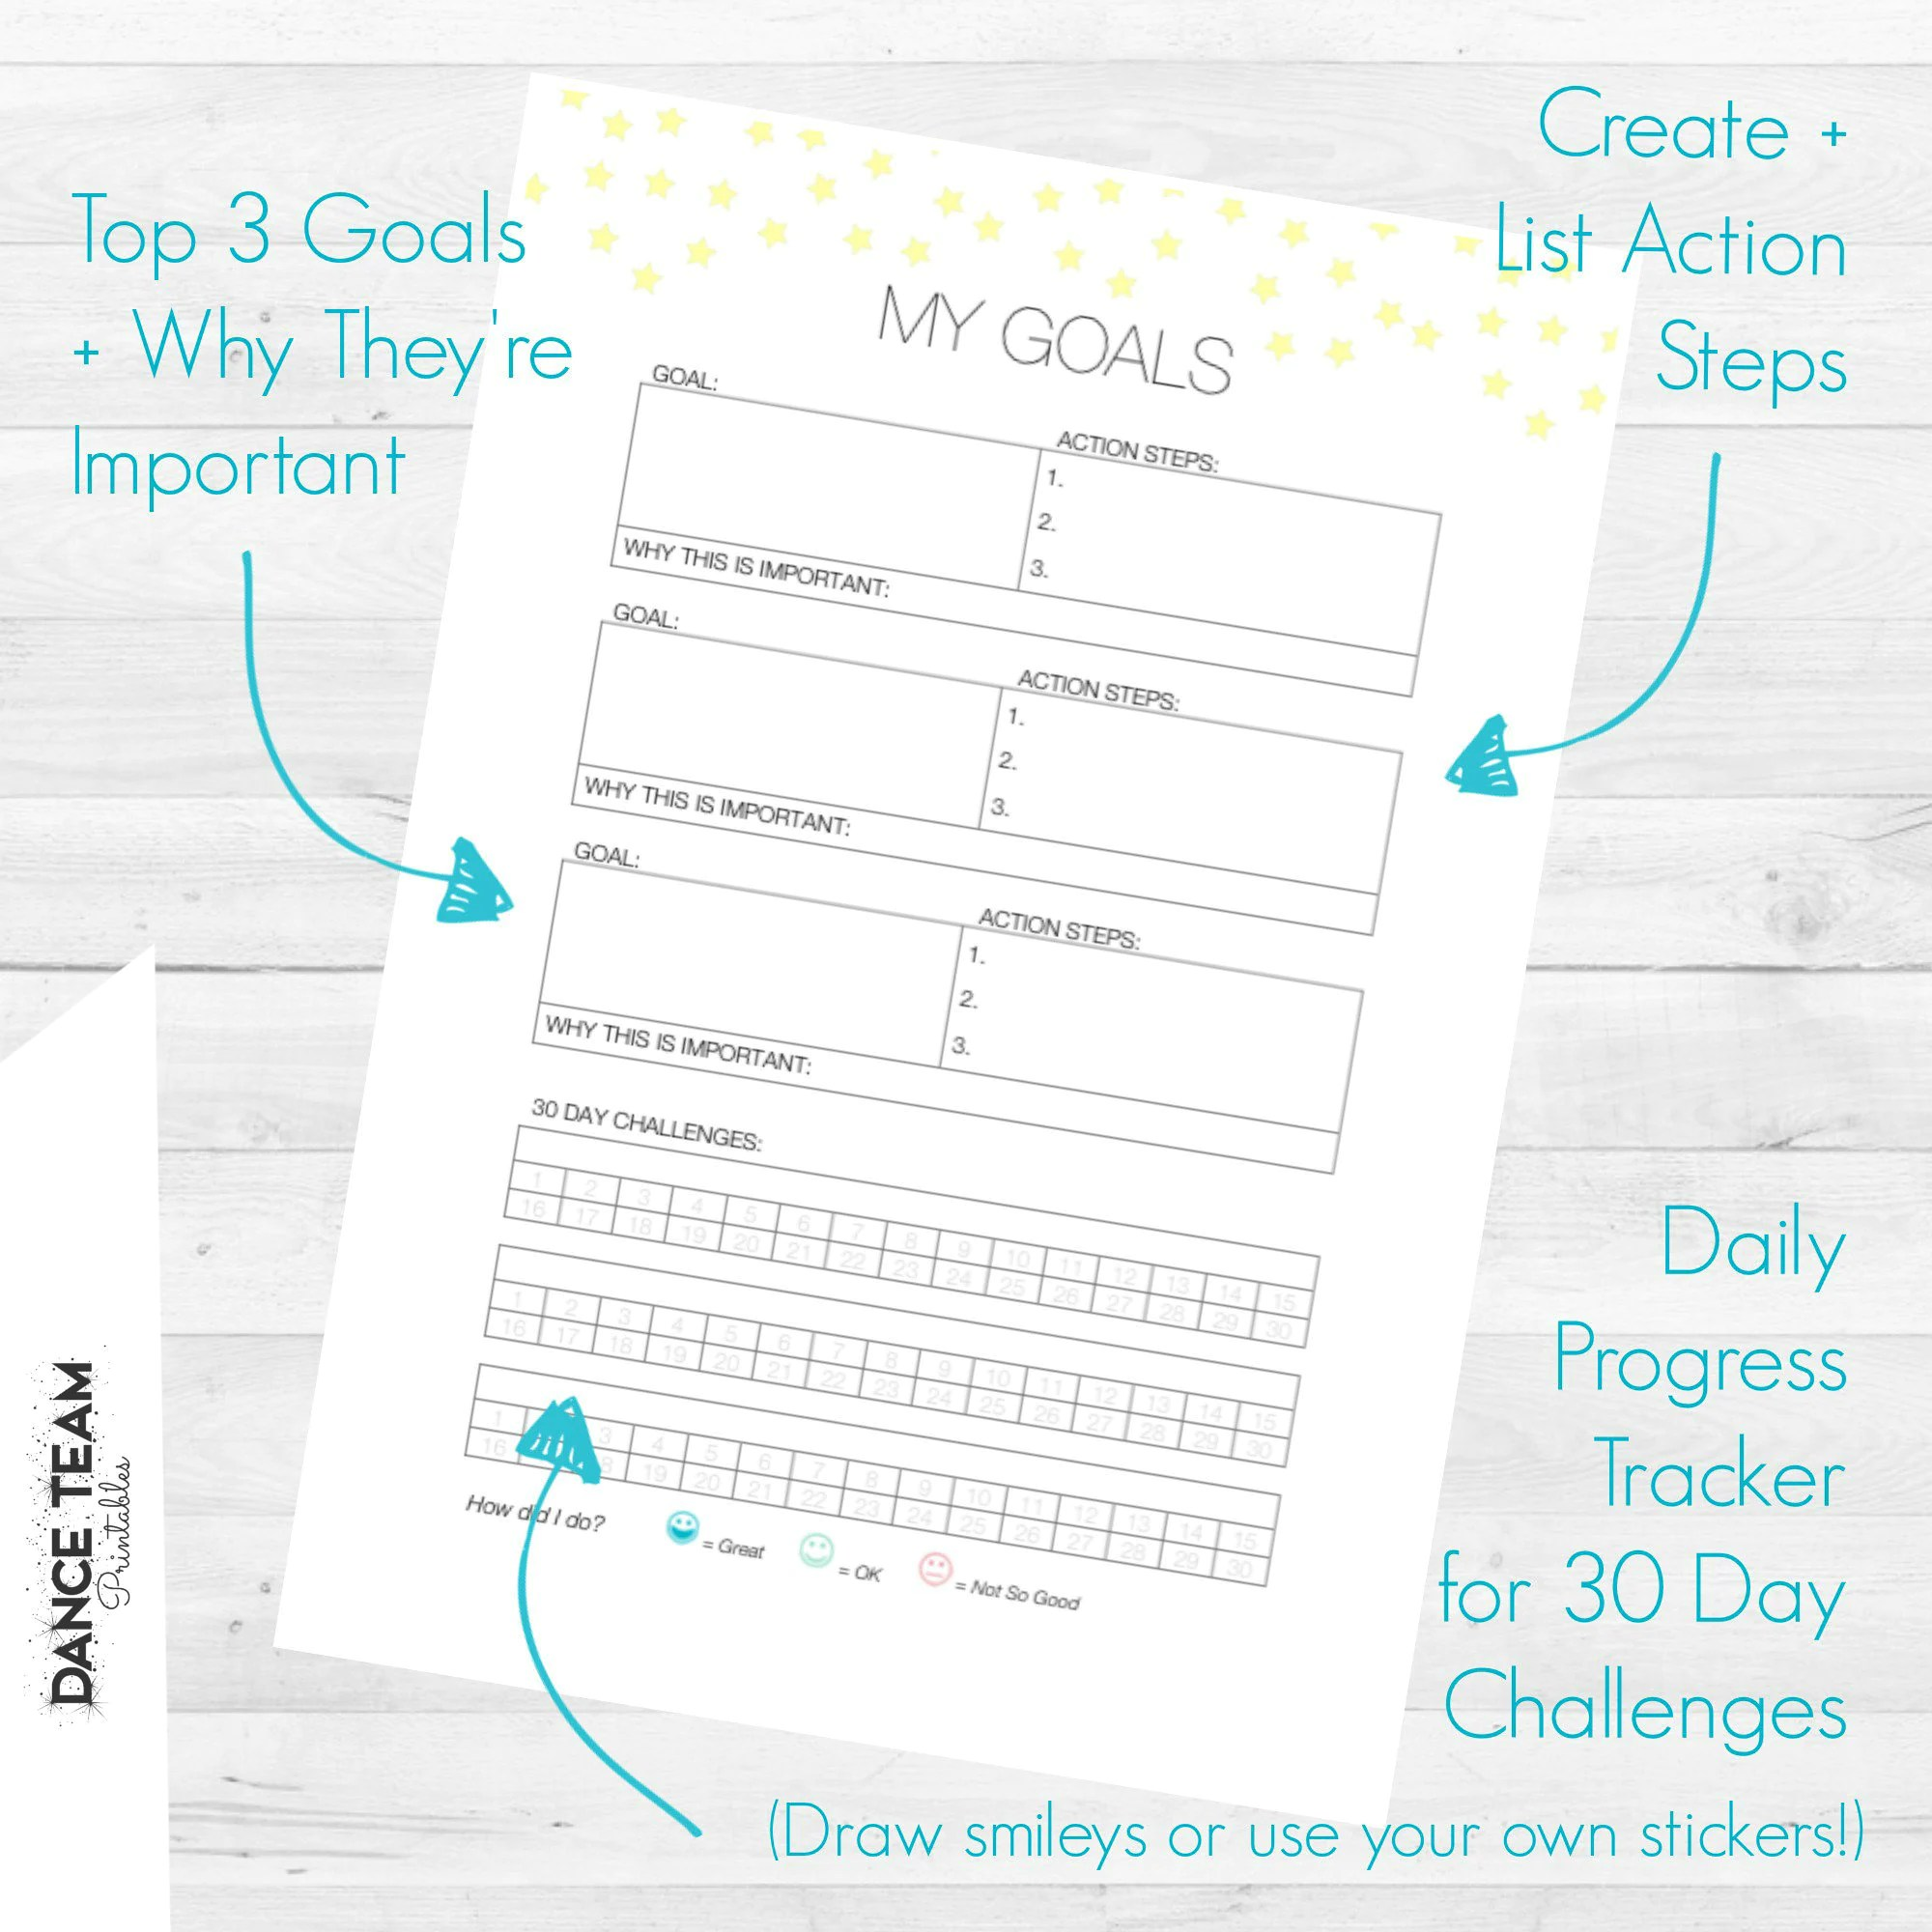 Goal Tracking Worksheet My Goals Printable